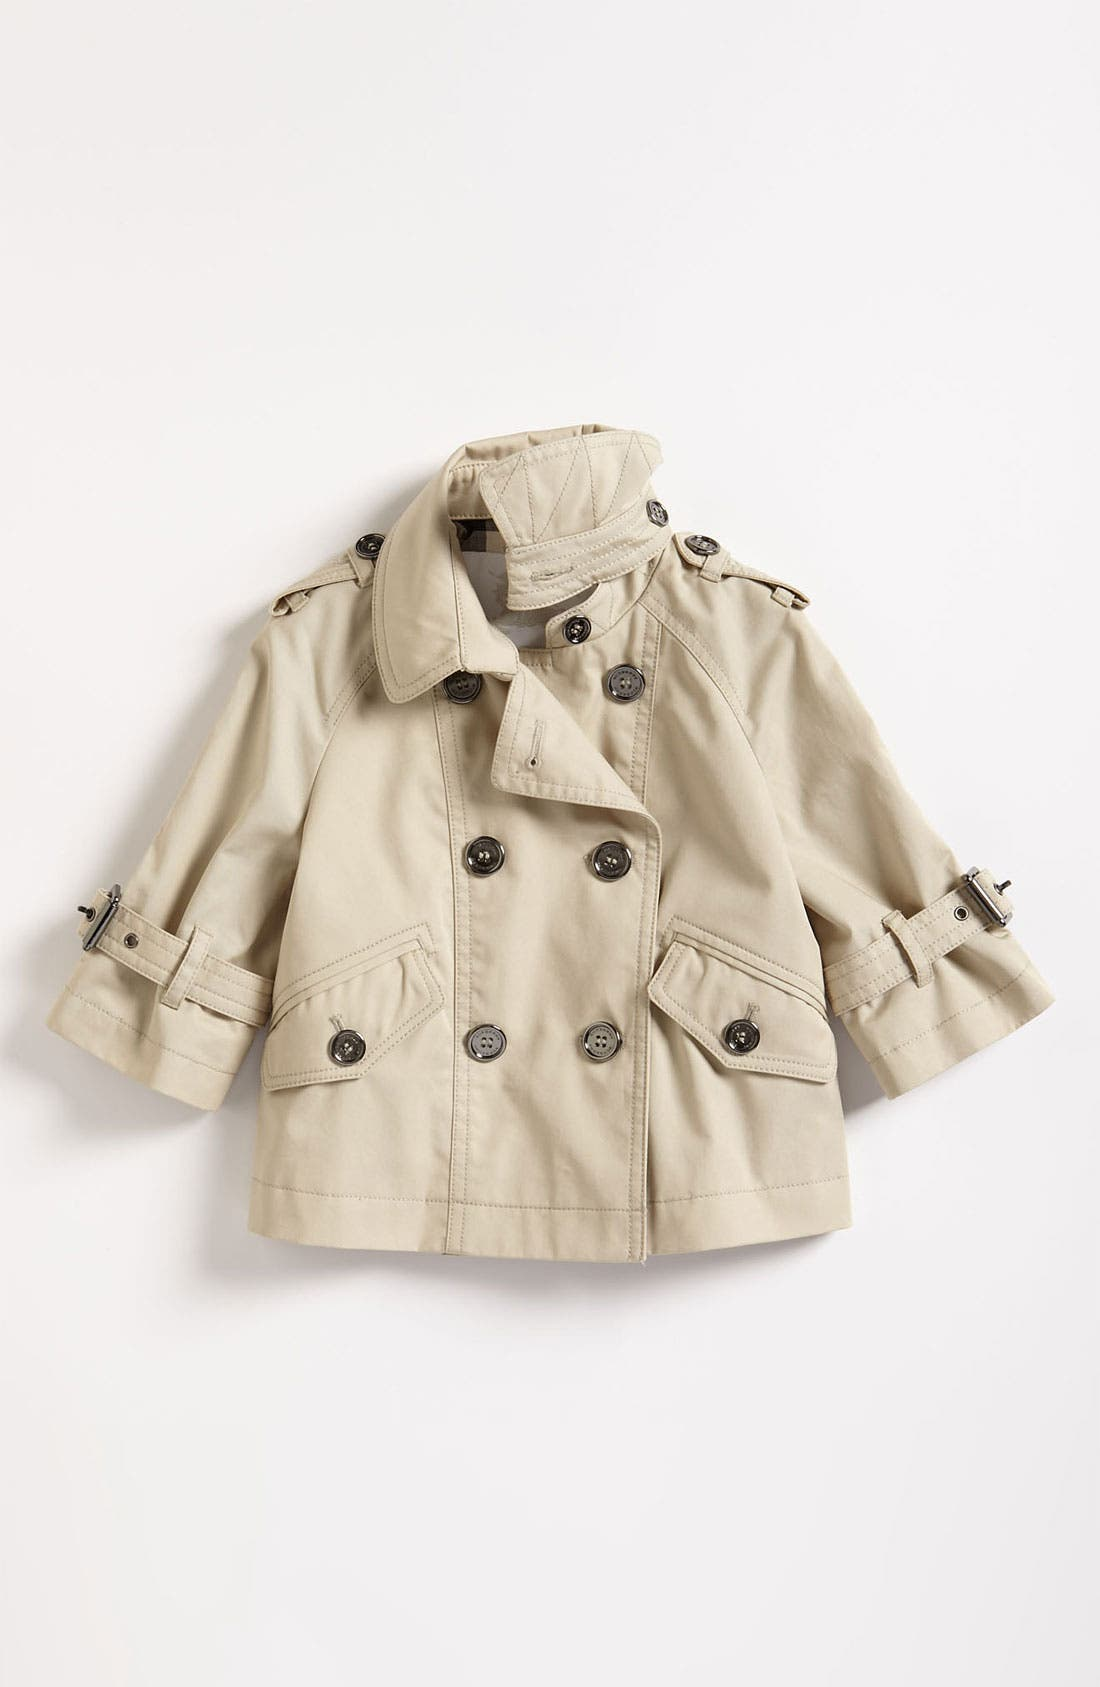 Alternate Image 1 Selected - Burberry Jacket (Toddler)